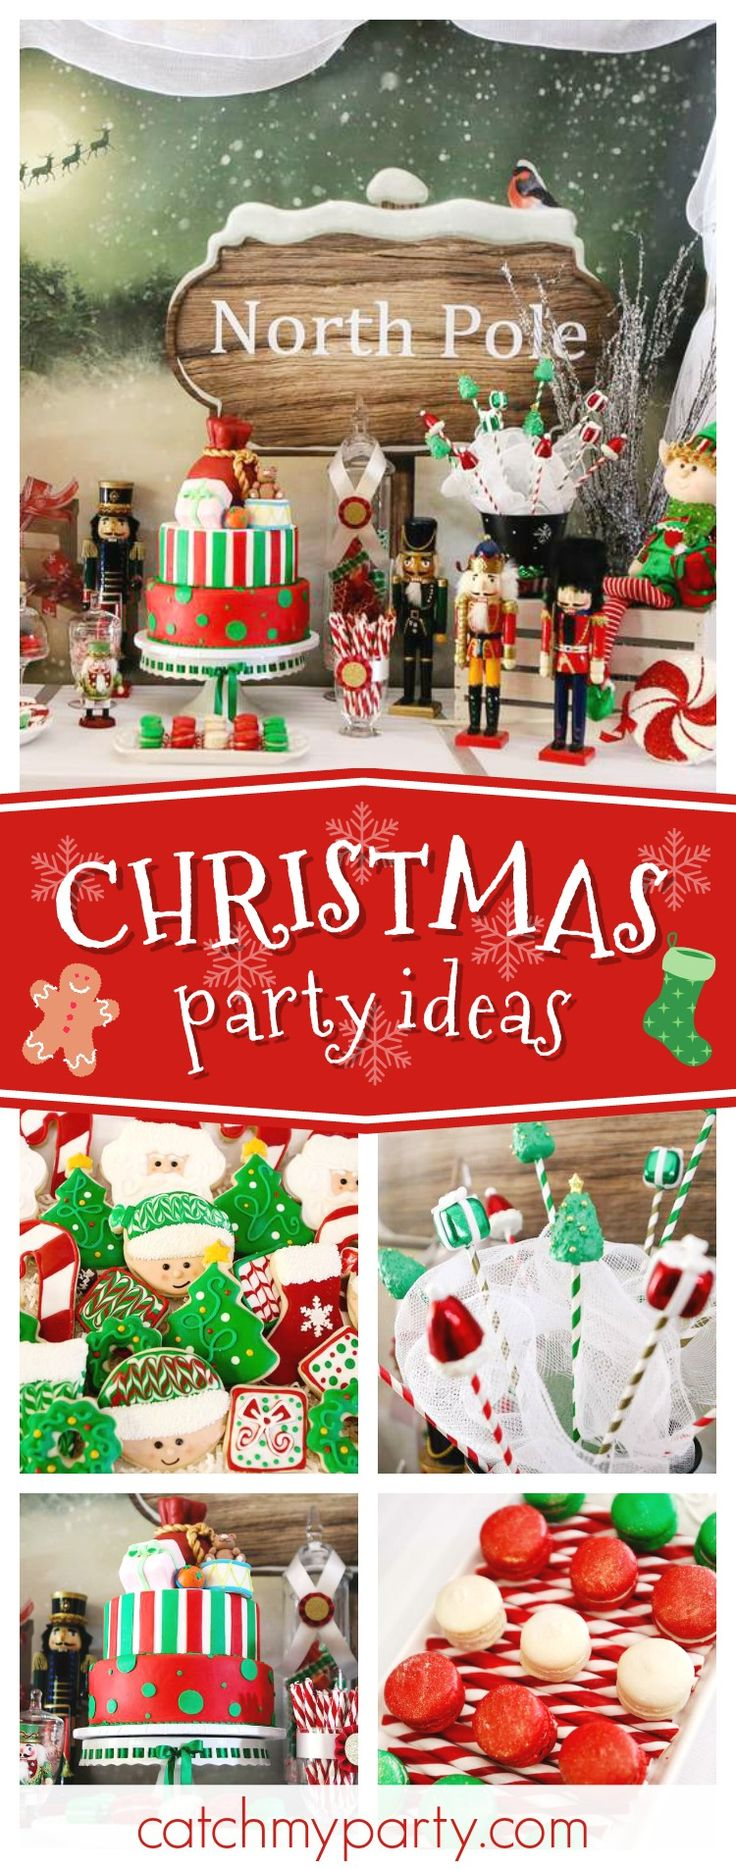 Take a trip to the North Pole this Christmas and check out this fun party! The mix of Christmas cookies are so cool!! See more party ideas and share yours at CatchMyParty.com #party #northpole #holidays #santa #christmas